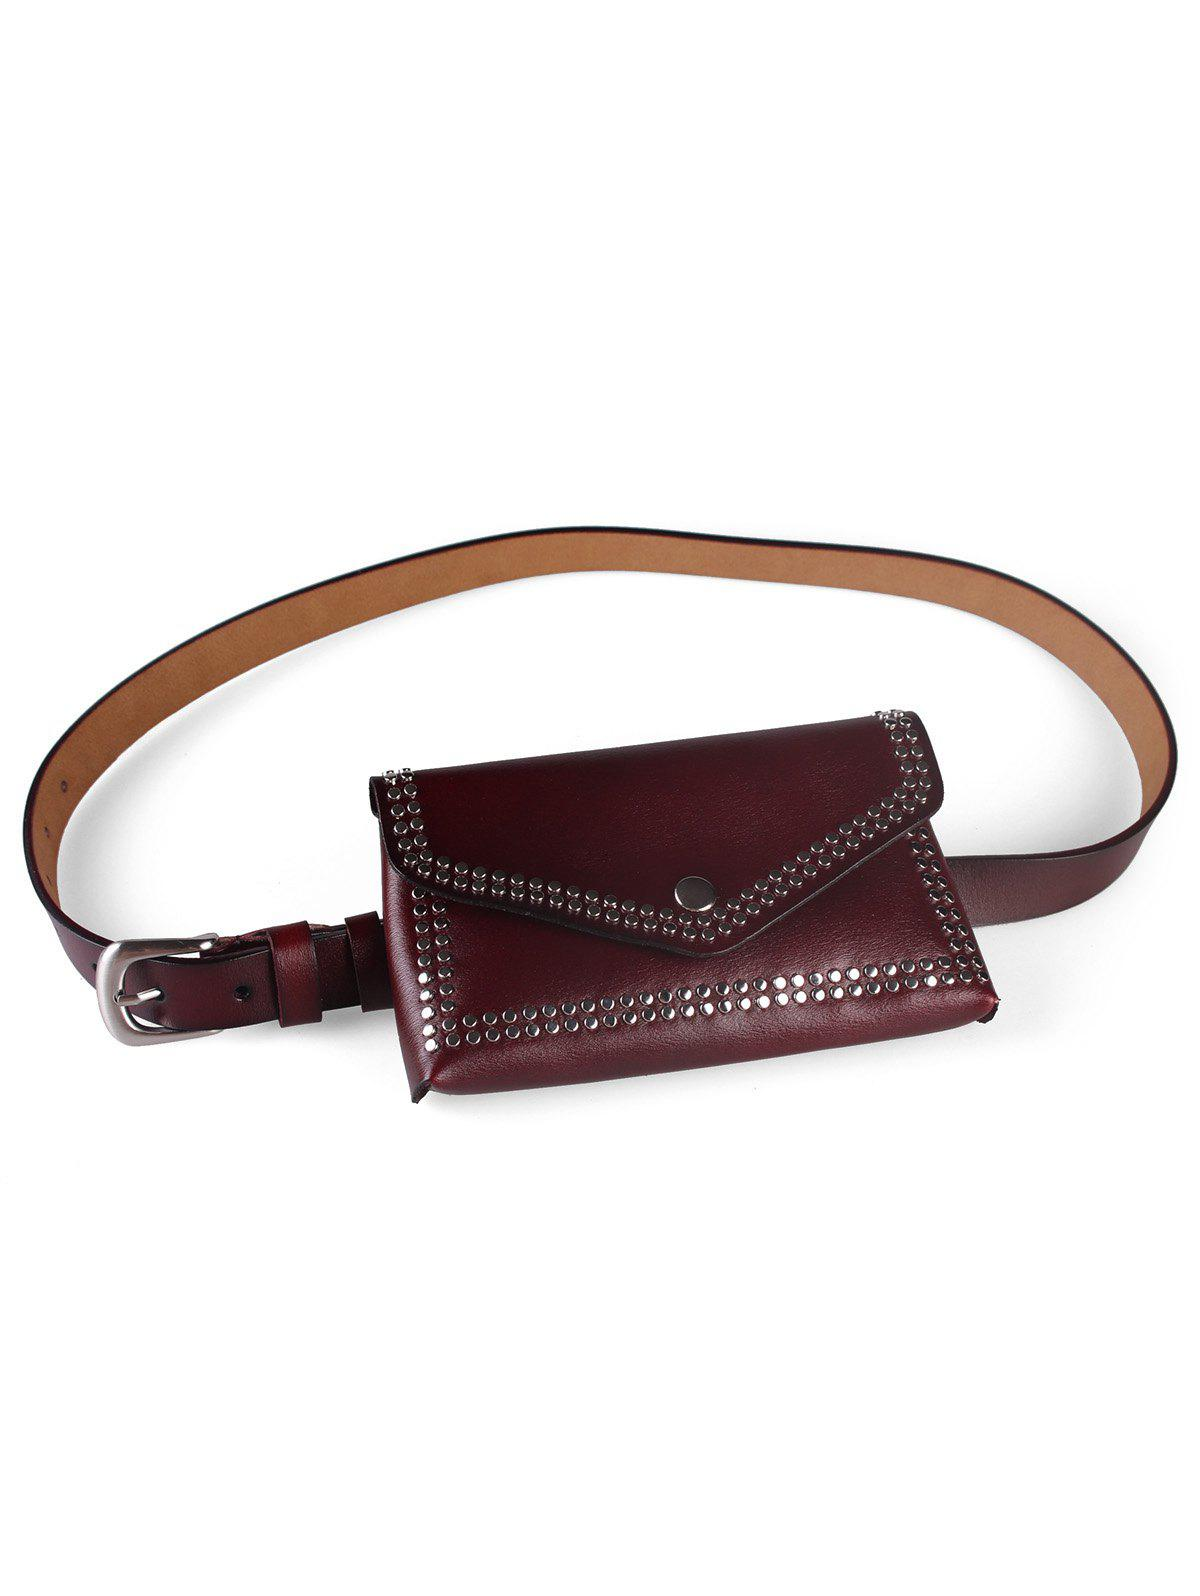 Discount Rivets Funny Bag Faux Leather Phone Card Belt Bag